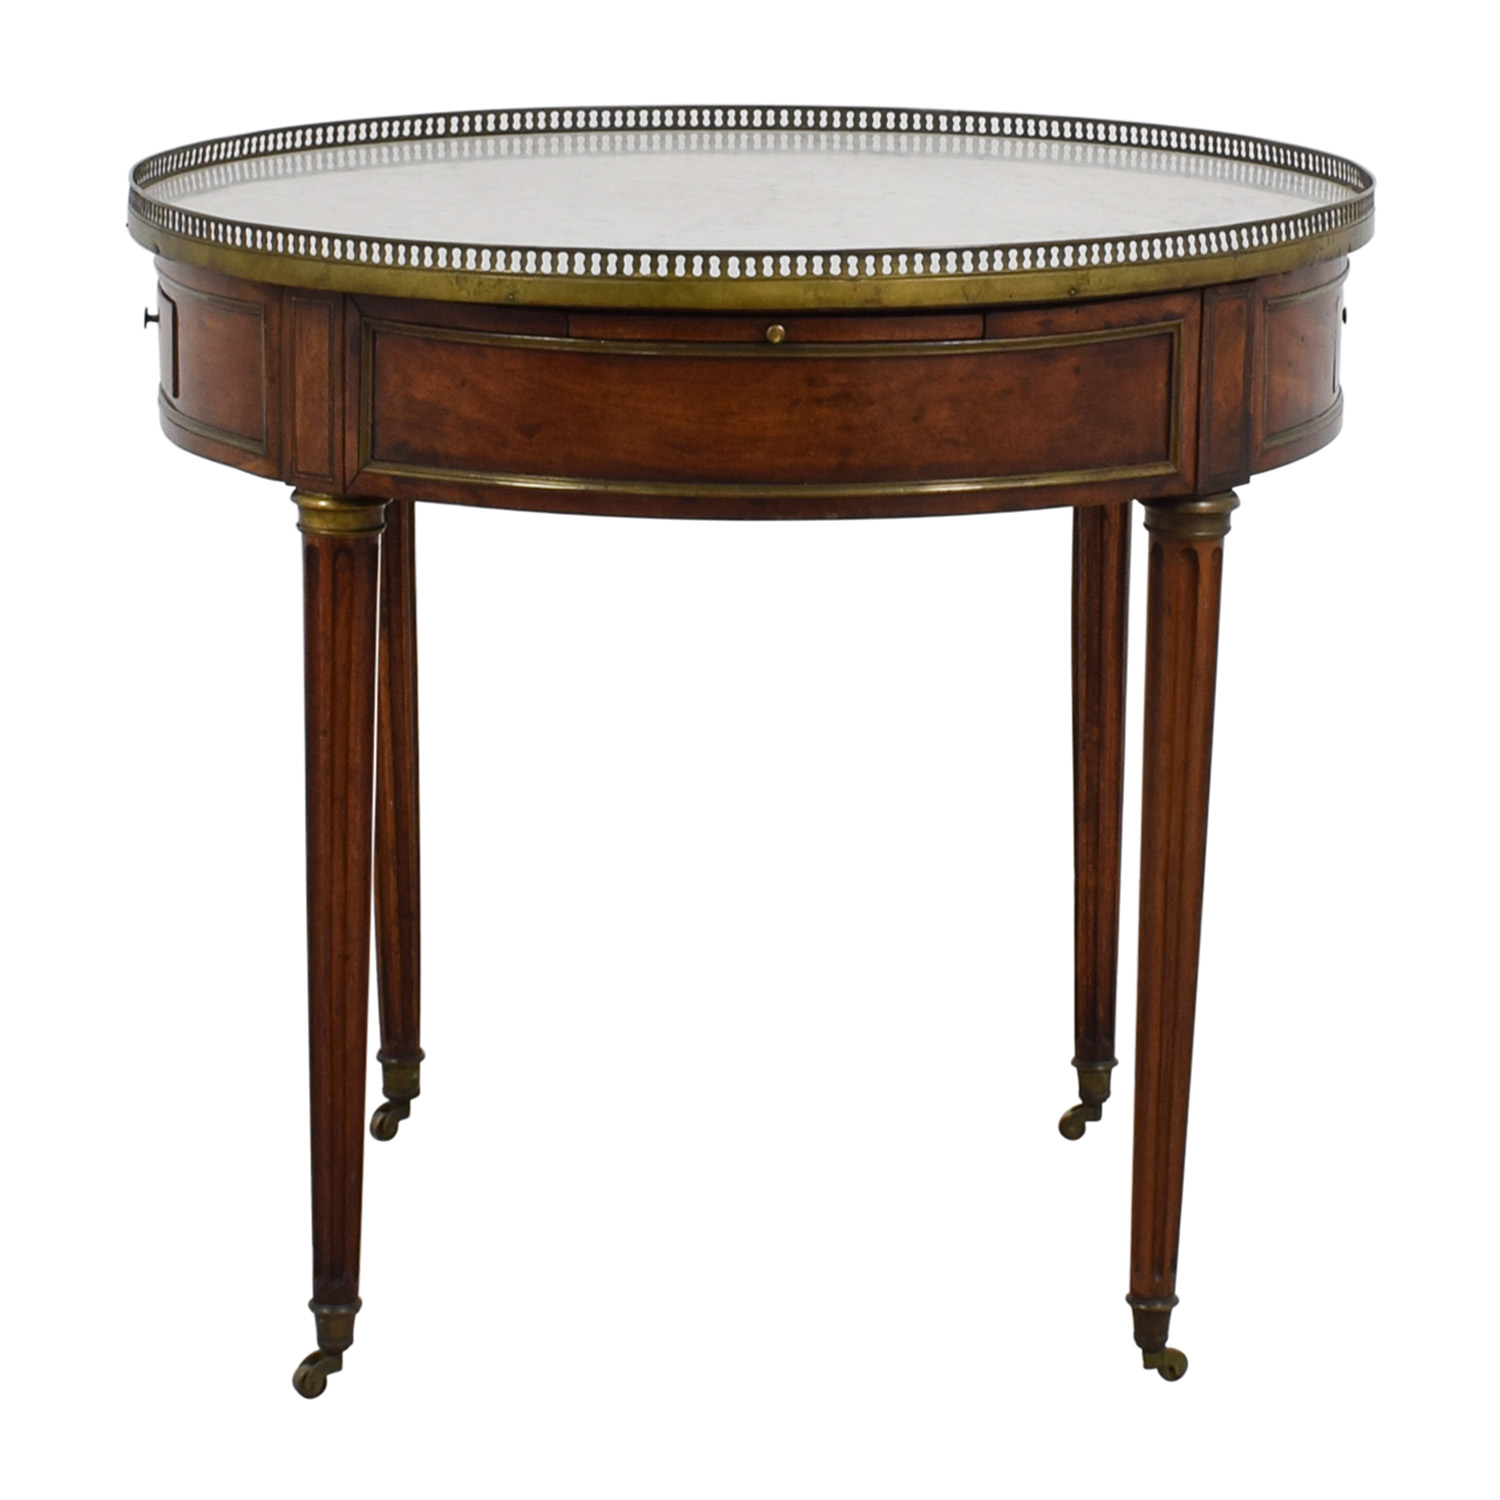 Antique Round Table with Marble Top / Tables